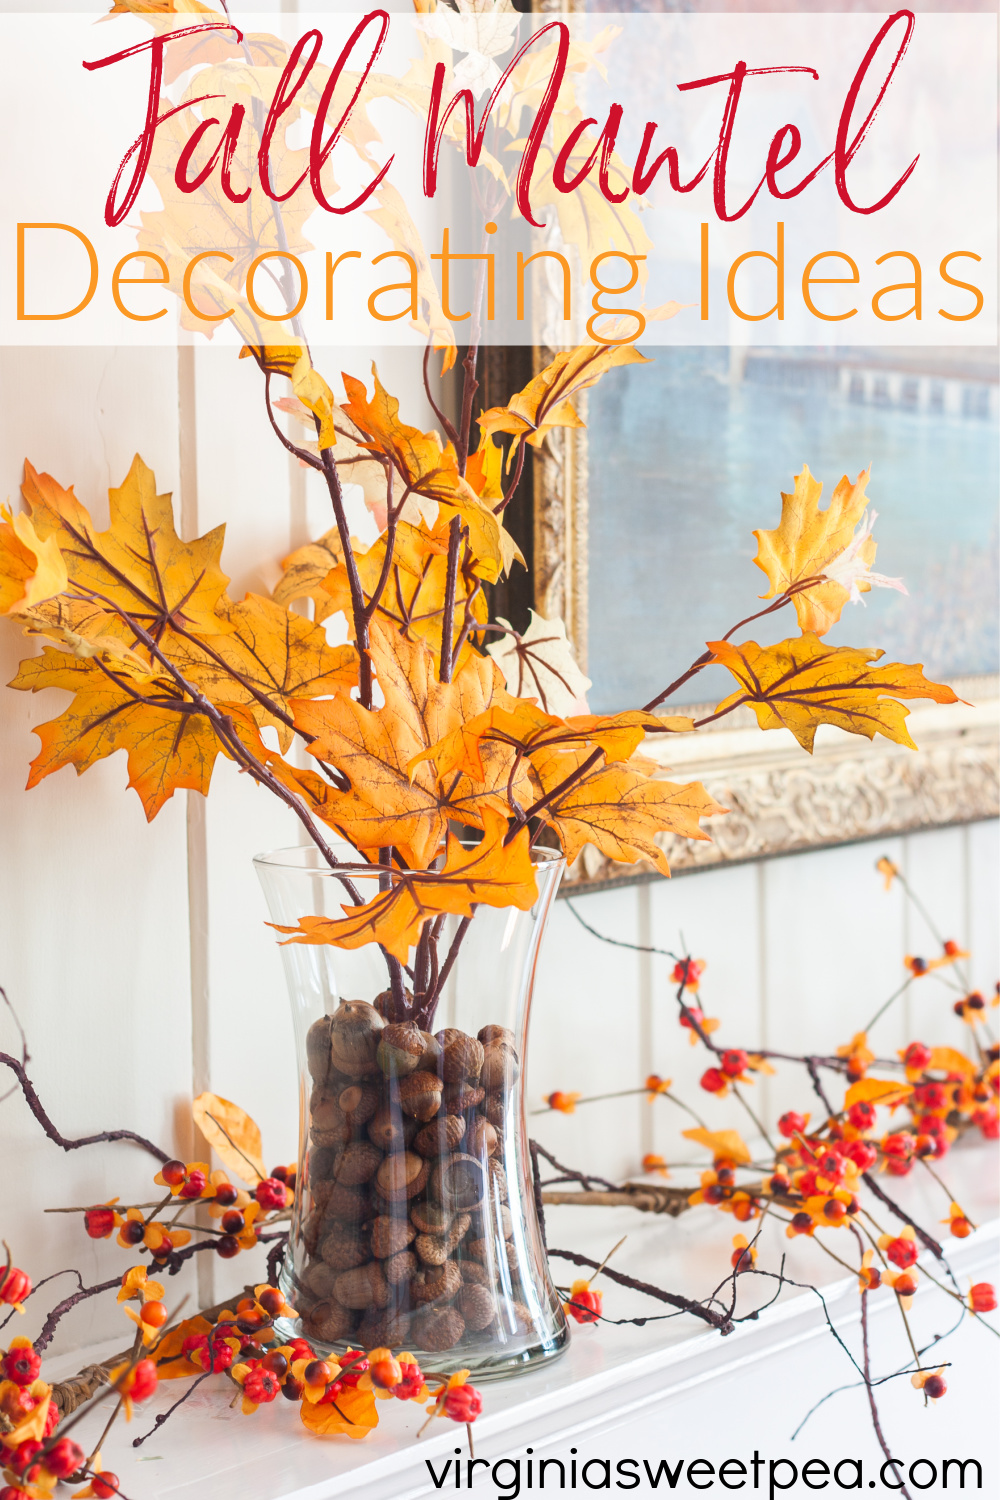 Fall Mantel Decorating Ideas - Get ideas for decorating a mantel for fall.  #fallmantel #fallmantelideas #falldecorating #falldecoratingideas via @spaula